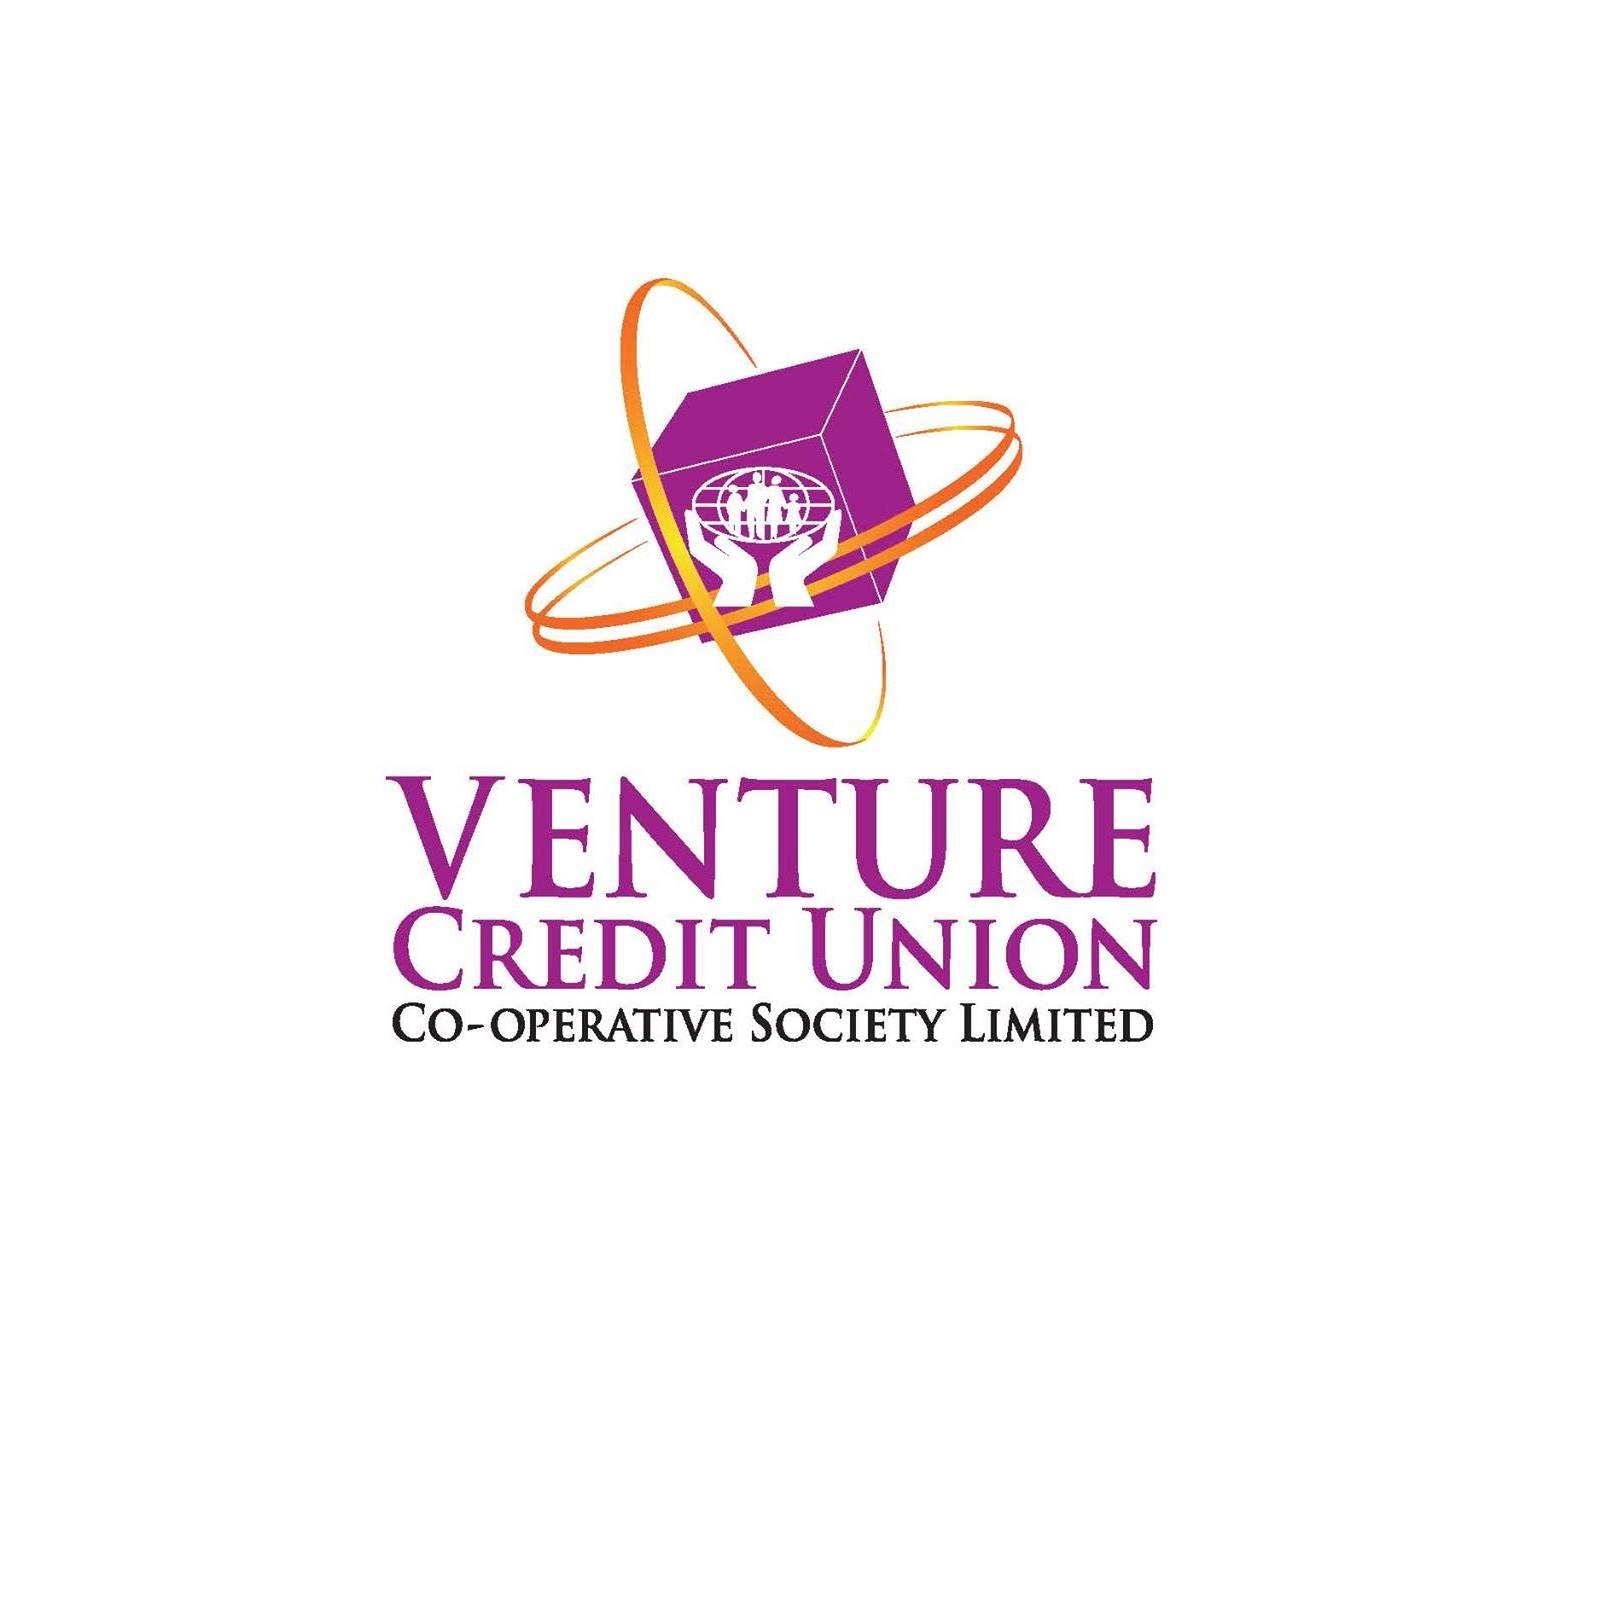 VENTURE Credit Union Co-operative Society Limited